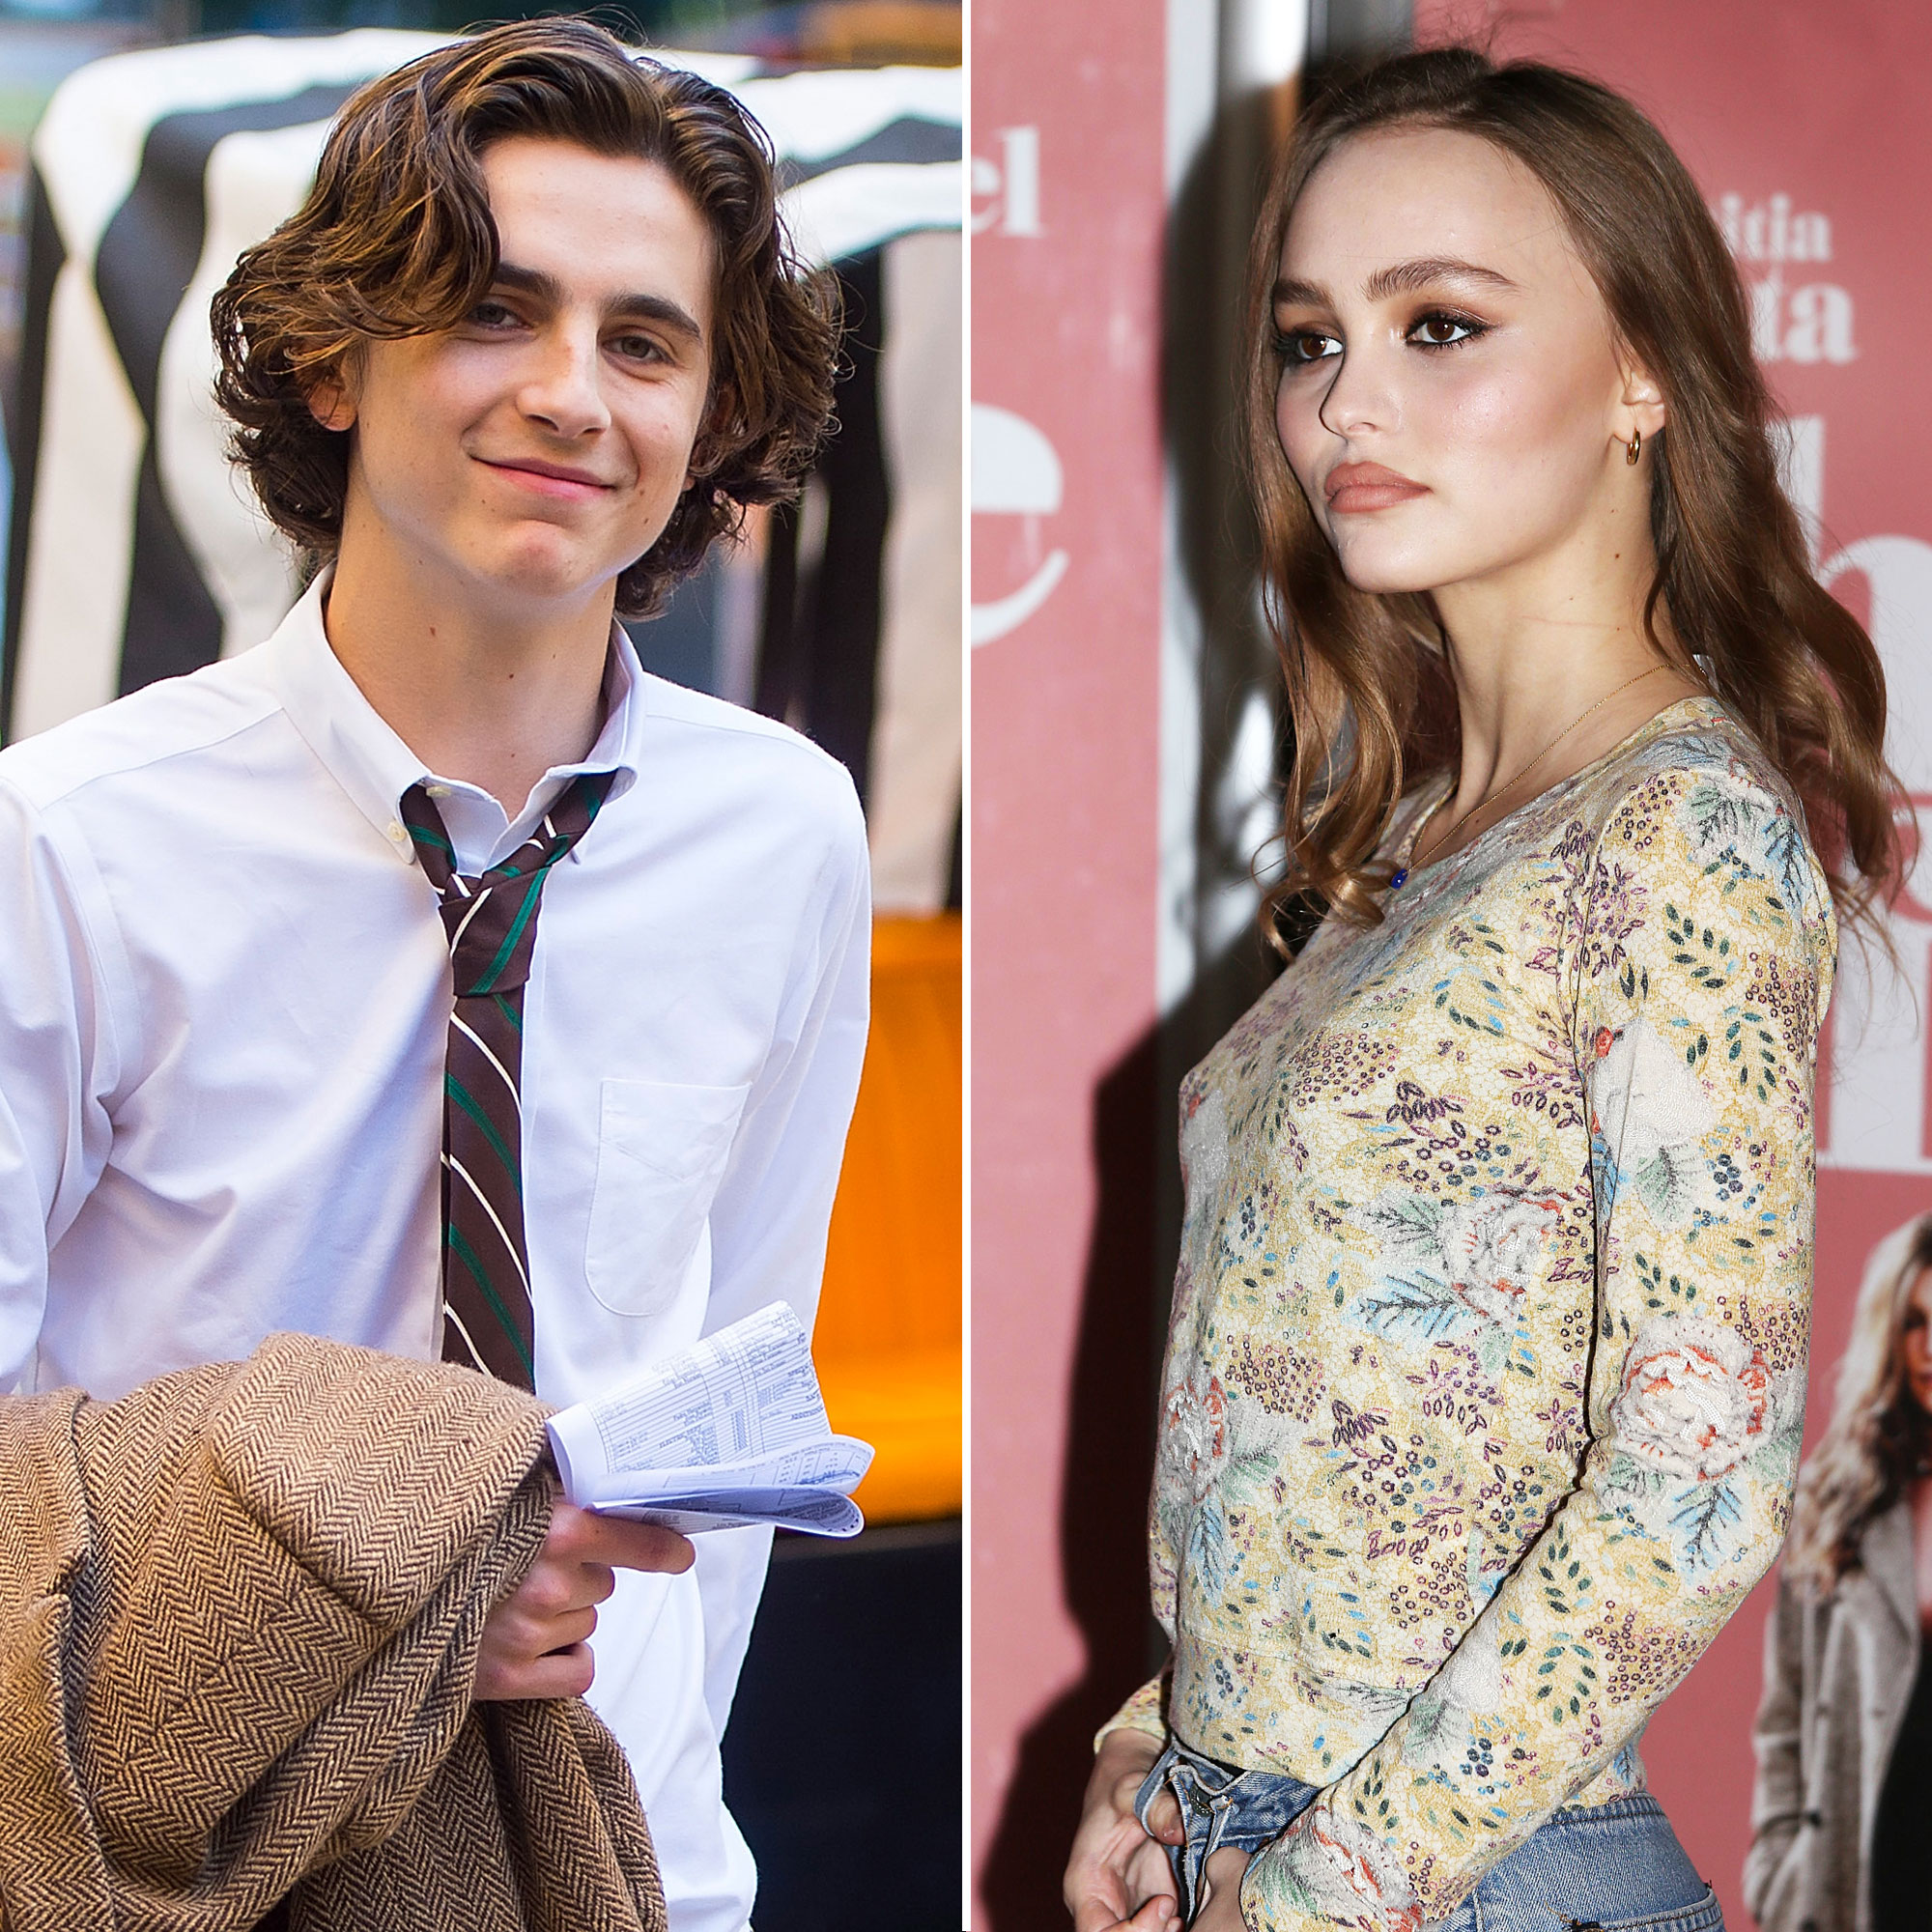 Celebrity Couples of 2018 - Reports surfaced in September that the actor and model, who filmed the upcoming Netflix film The King in 2018, were dating. In October, an eyewitness told Us Chalamet and Lily-Rose, the daughter of Johnny Depp and Vanessa Paradis , were packing on the PDA in New York City.